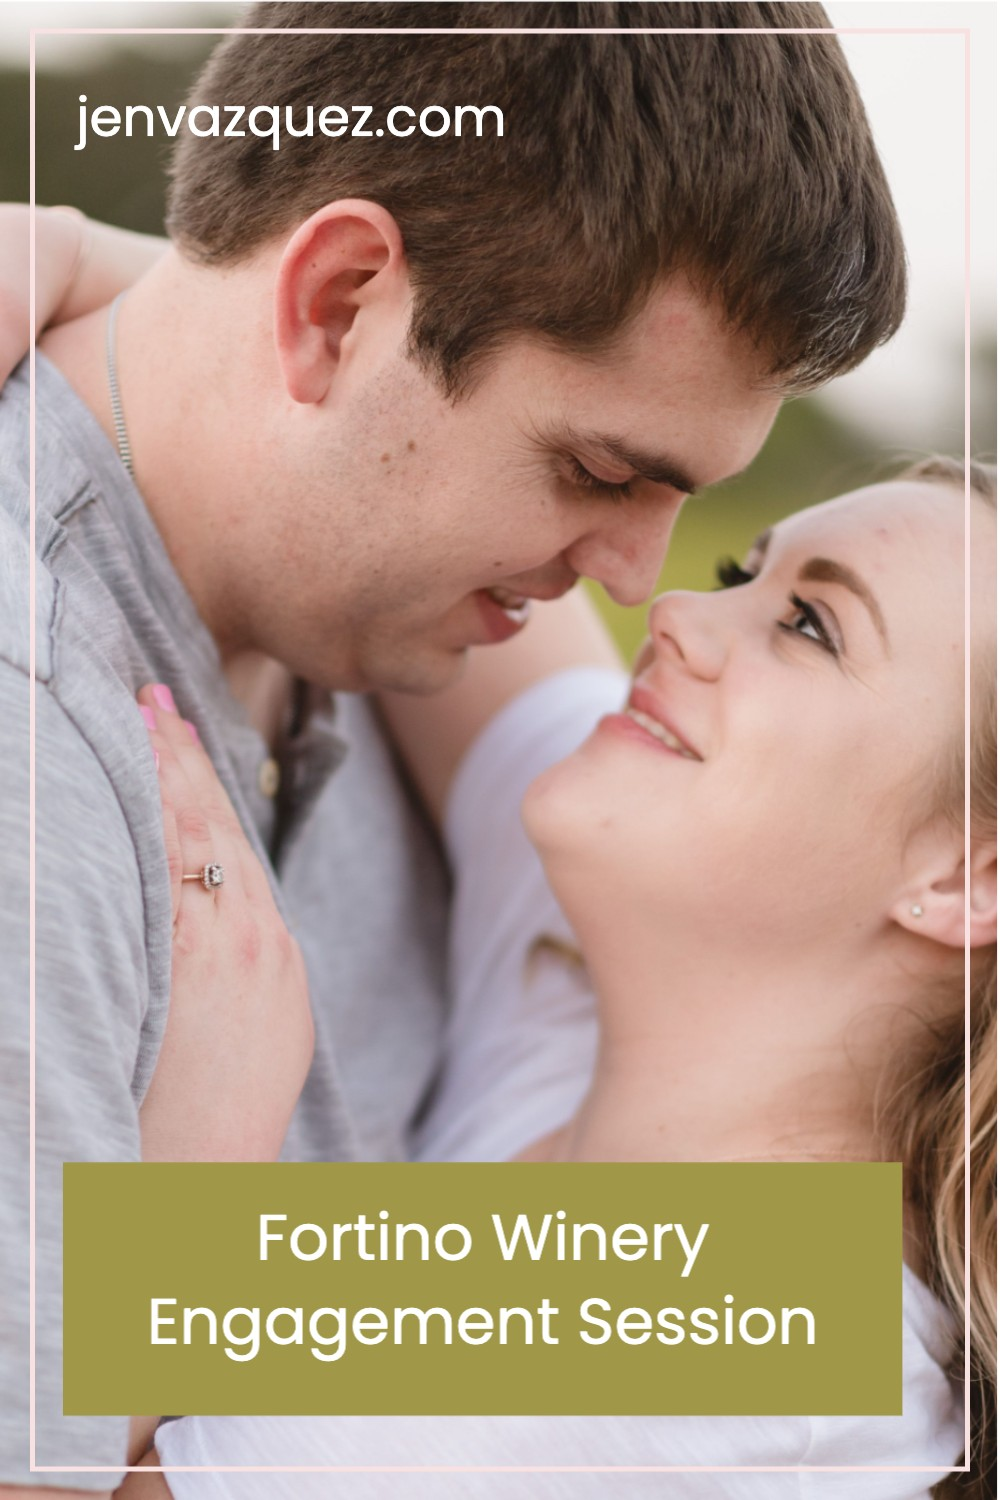 Fortino-Winery-Engagement-Session-|-Ashley-+-Stephen-|-Destination-Wedding-Photographer-|-Jen-Vazquez-Photography 3